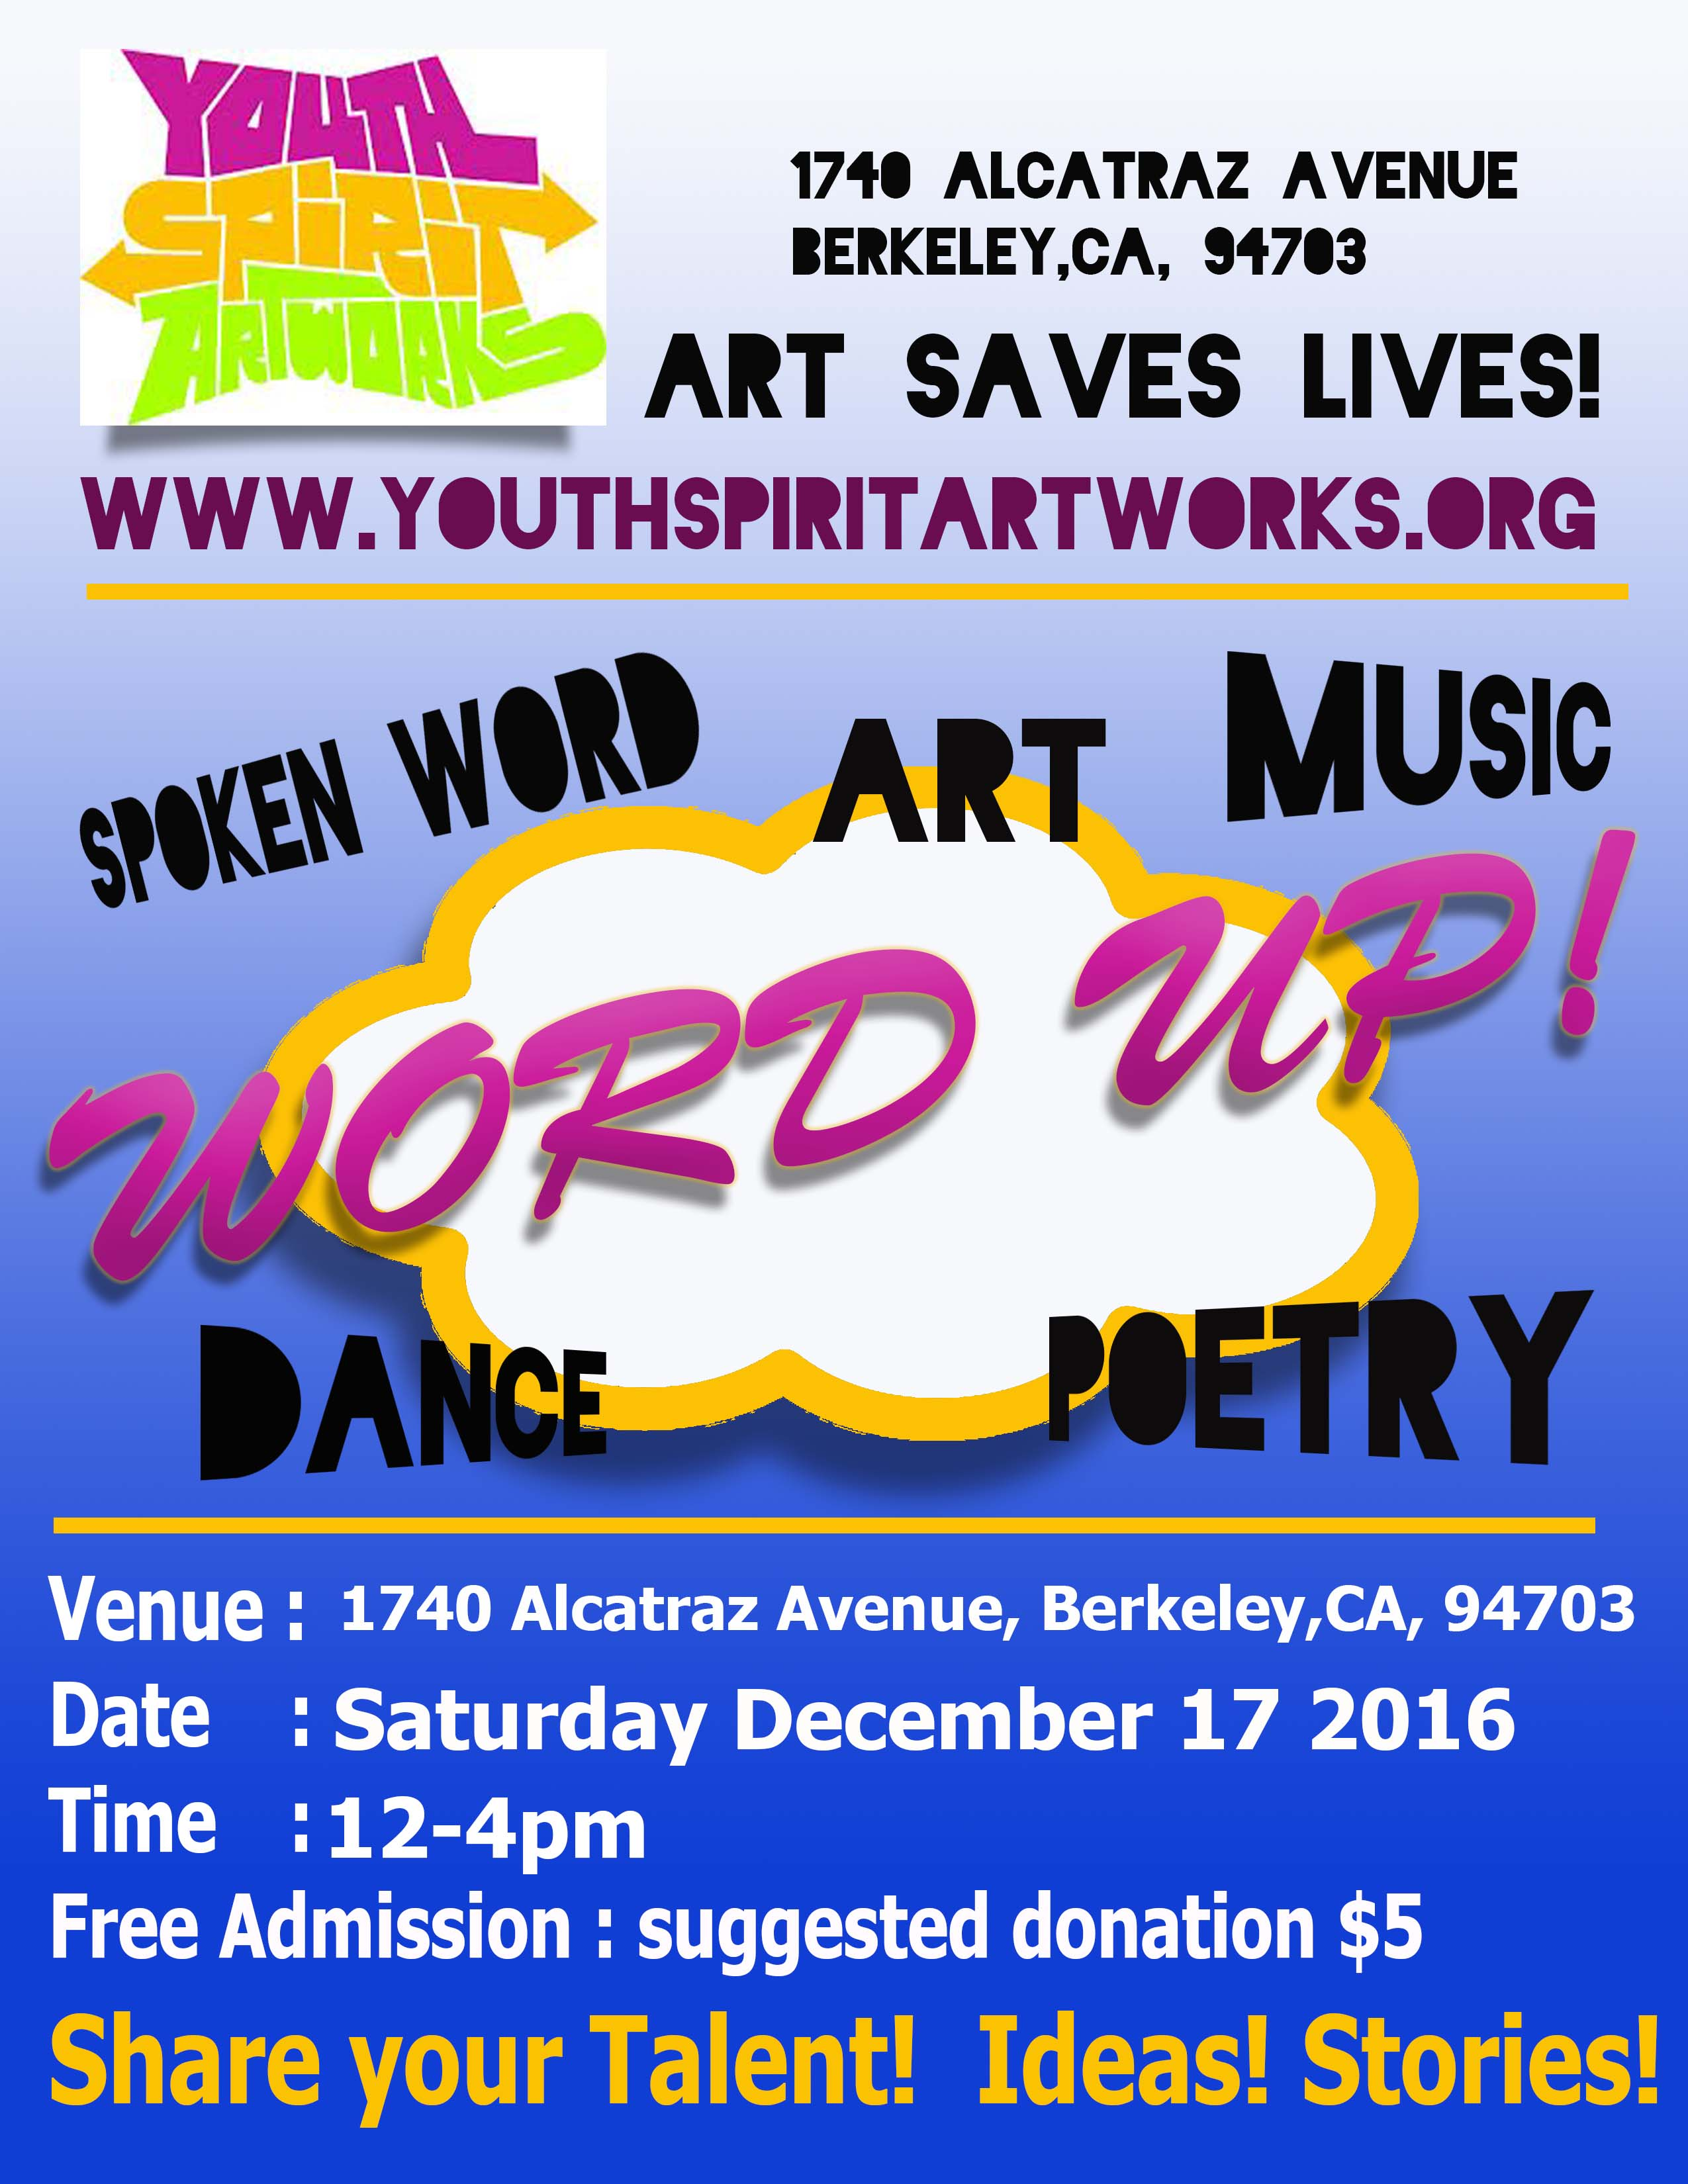 YSA poetry, music and art event